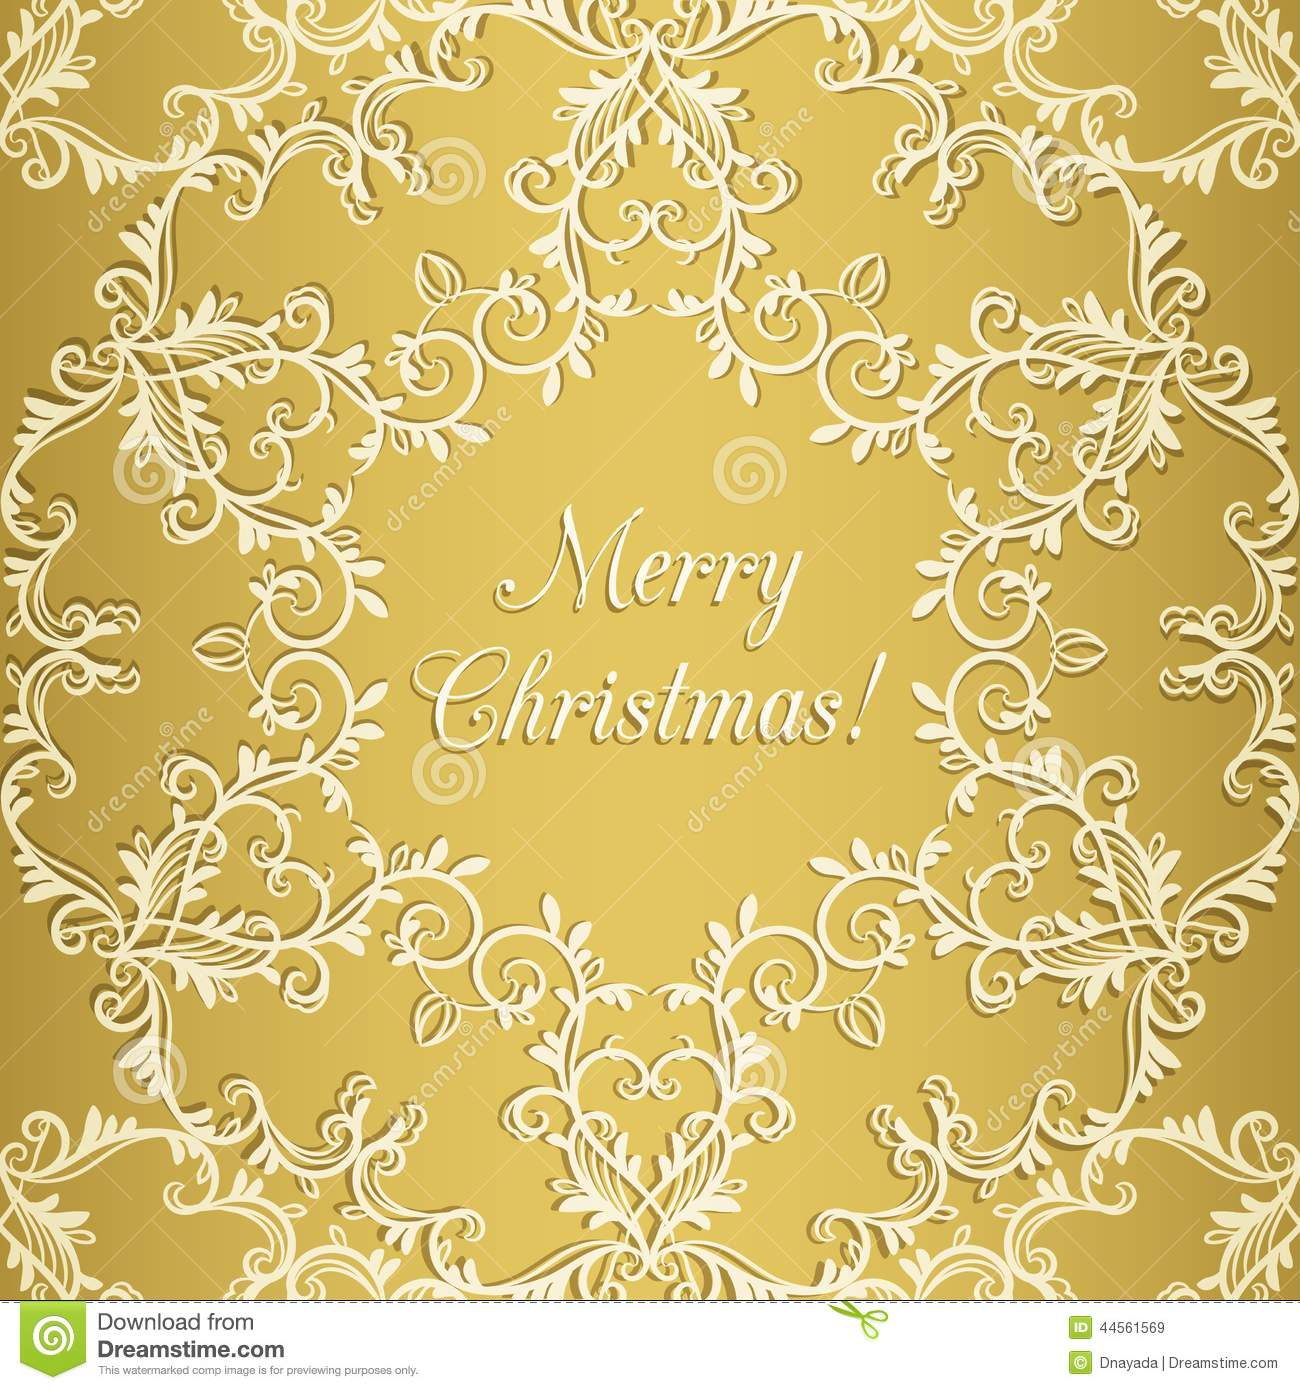 Christmas greeting card with snowflake gold stock vector download christmas greeting card with snowflake gold stock vector illustration of illustration postcard m4hsunfo